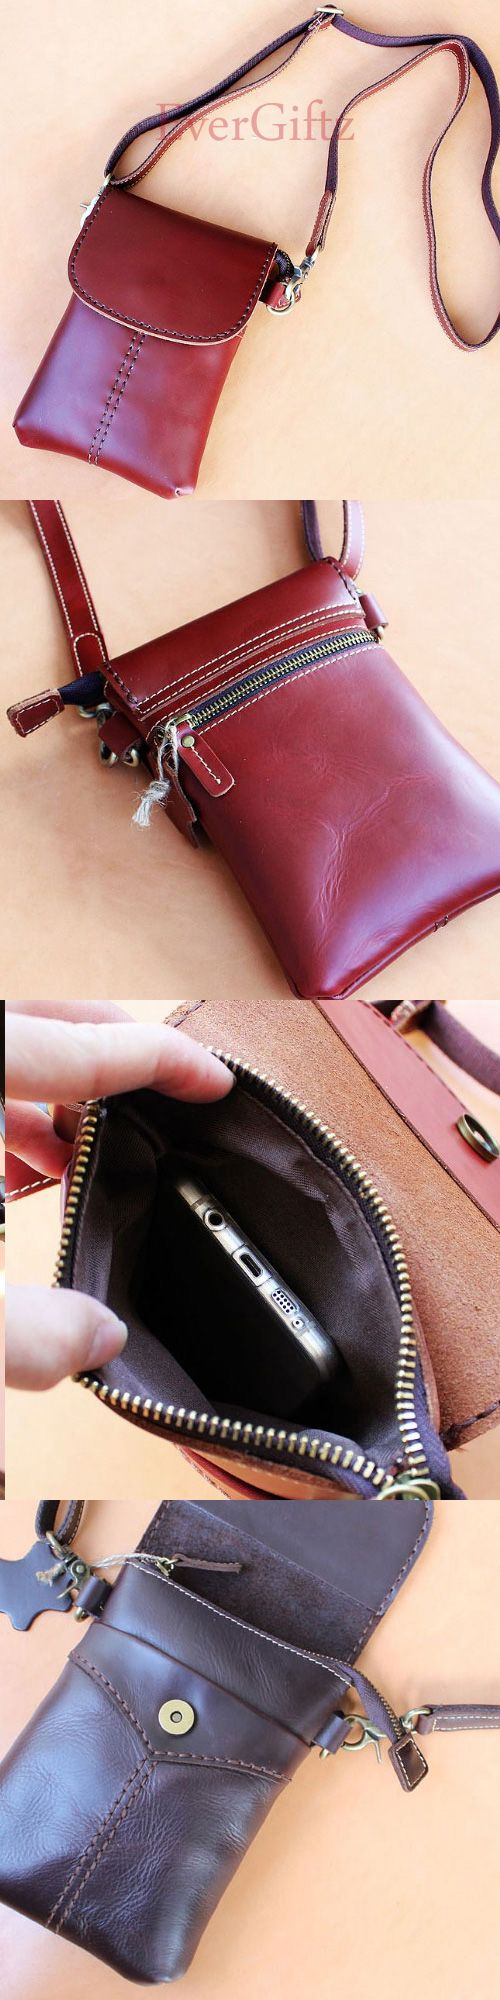 Handmade phone leather vintage women handbag shoulder bag crossbody bag